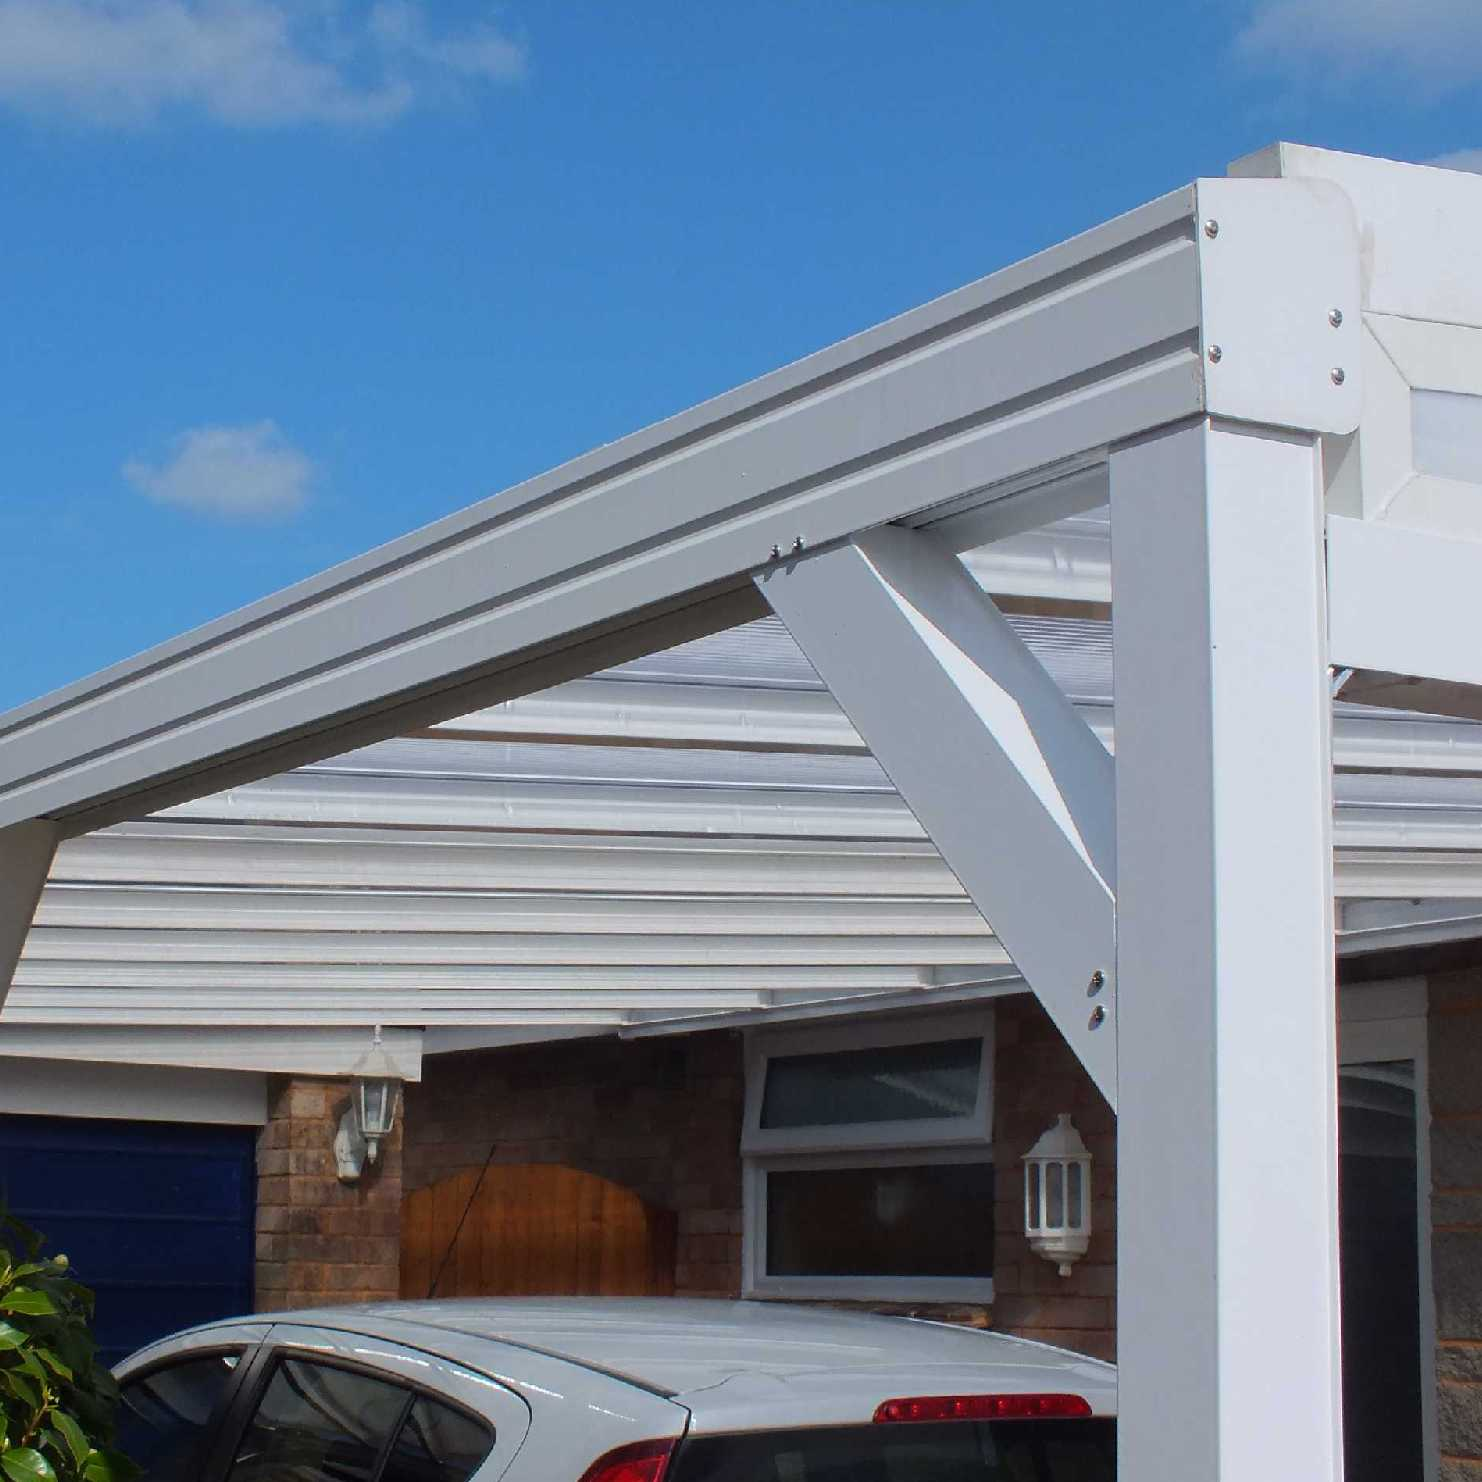 Buy Omega SmartLean-To Canopy with 16mm Polycarbonate Glazing - 9.5m (W) x 2.0m (P), (5) Supporting Posts online today